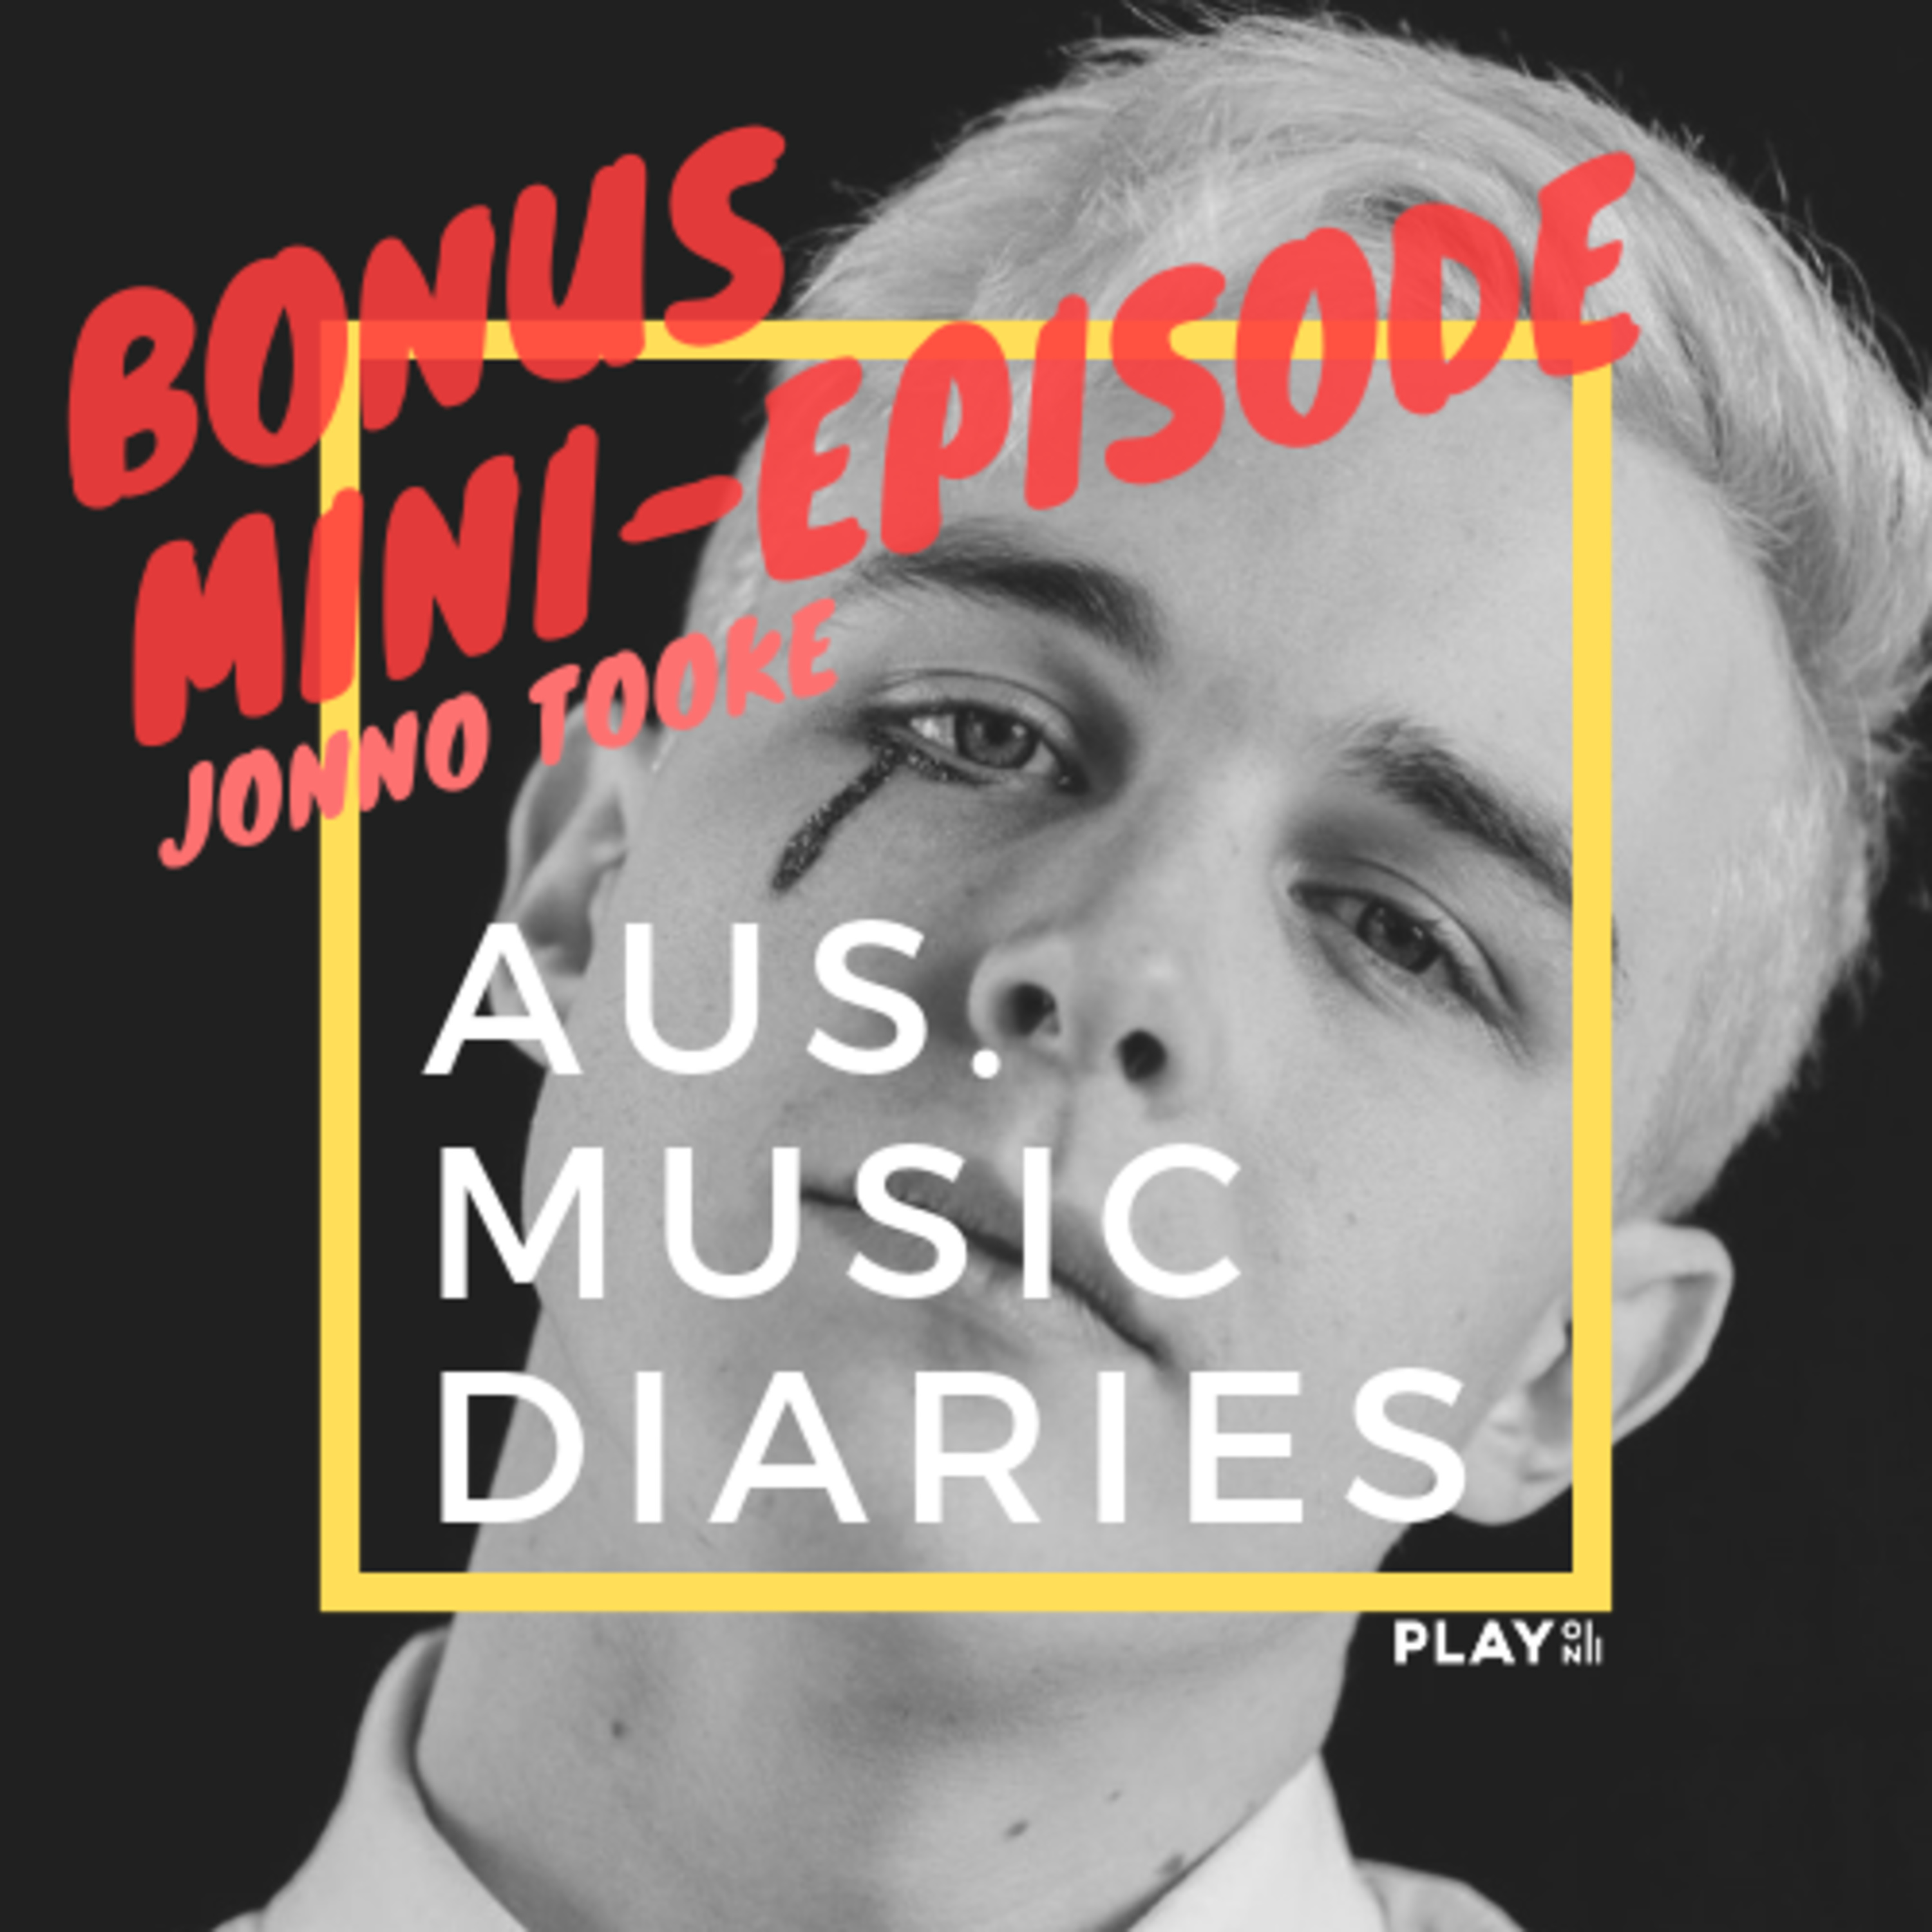 Bonus Guest Episode: Jonno Tooke from Cry Club has a good rave about Bonniesongs